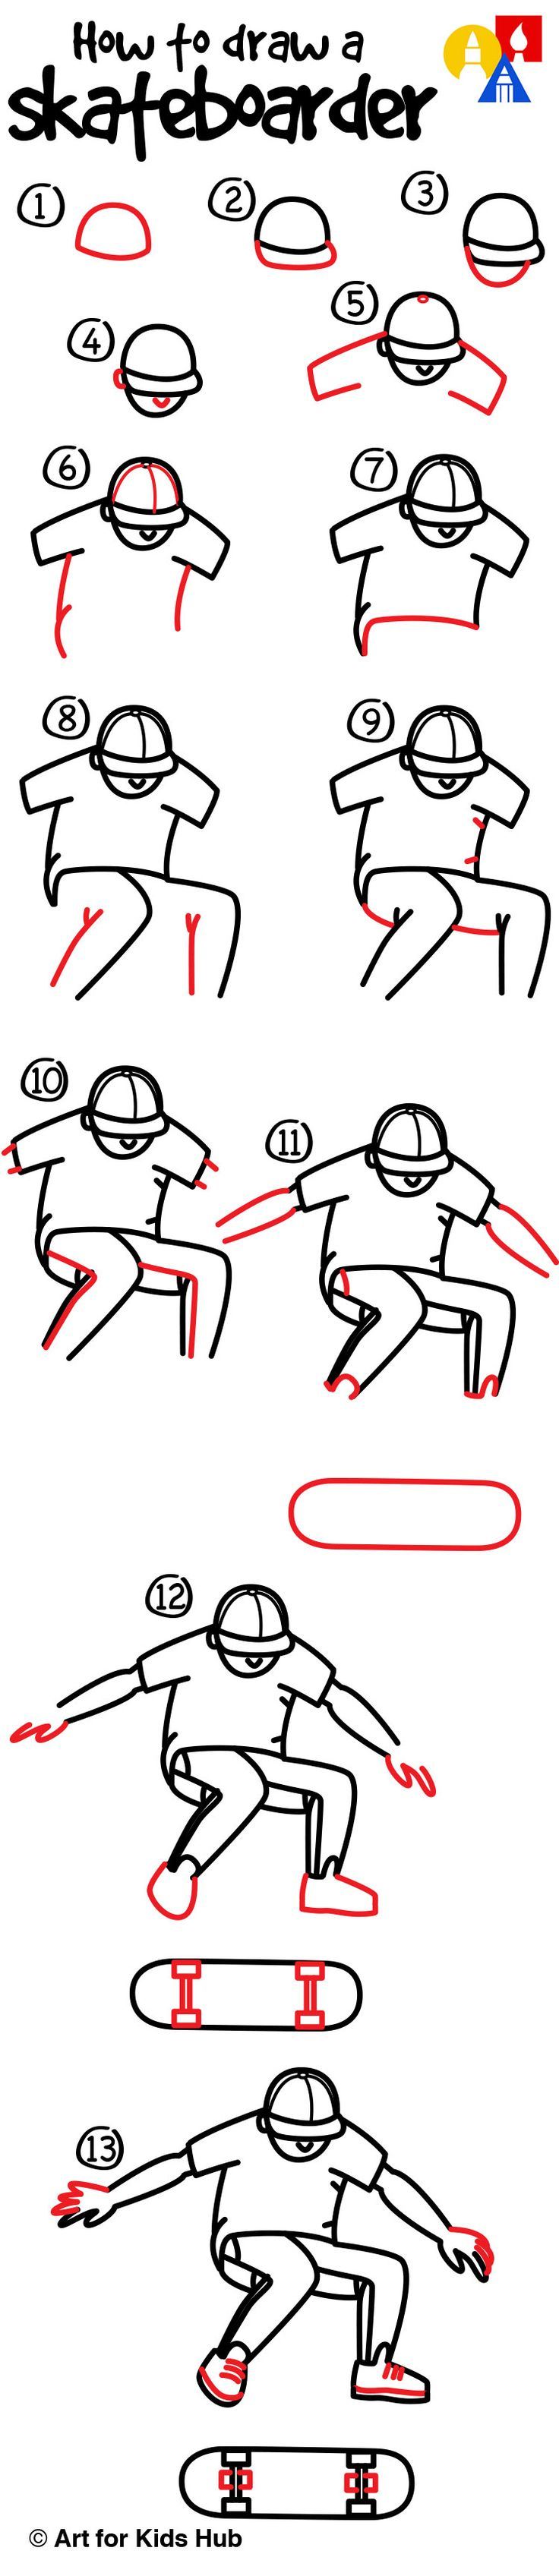 How to draw a skateboarder doing a kickflip!